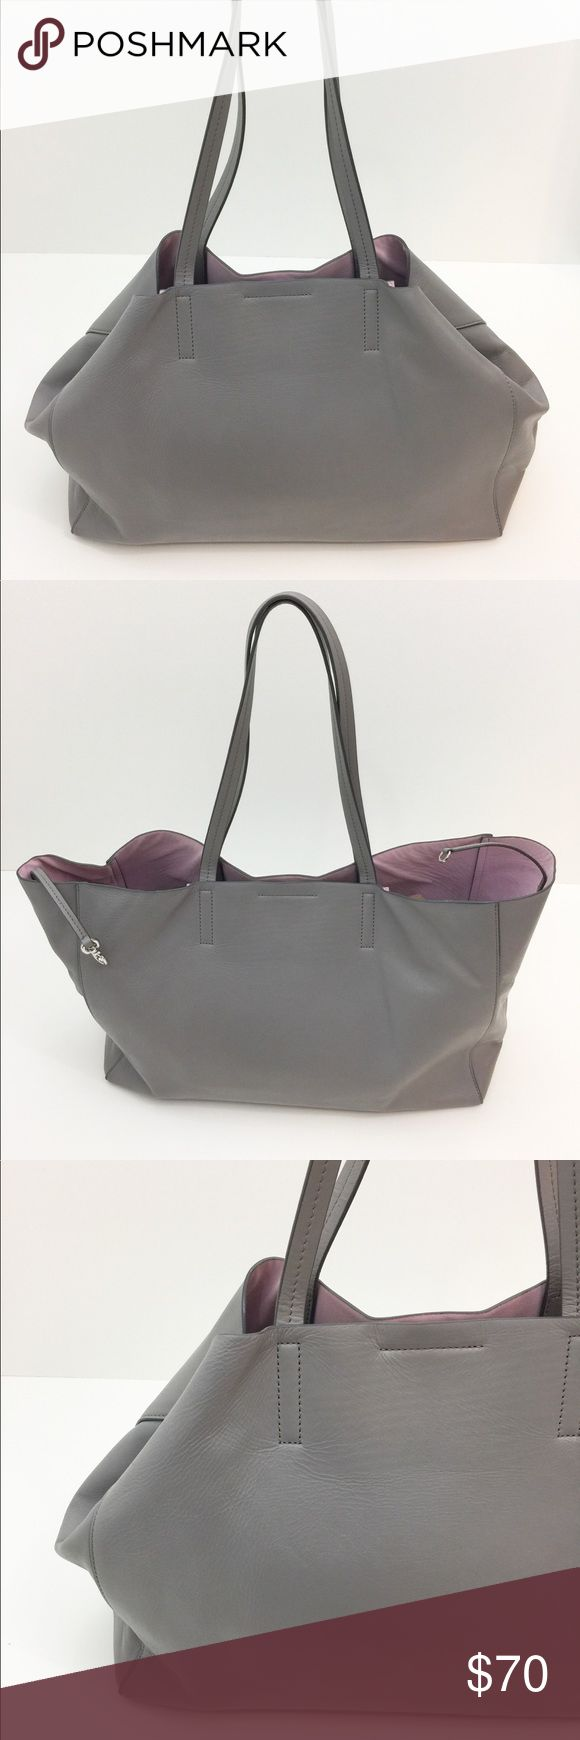 """Banana Republic Gray Larking Large Tote Bag Banana Republic Larkin large gray tote with light pink nu-buck leather lining. Overall in pretty good condition - about 2 years old worn in the summer and fall only. The inside is clean with some very light signs of wear and minor stains from pens/lotion. One side features a small pocket for cellphone/makeup (on the inside of the bag) No tears or rips or any types of damages. - bag height with handle: 21"""" - bag height w/o handle: 10"""" - handle…"""